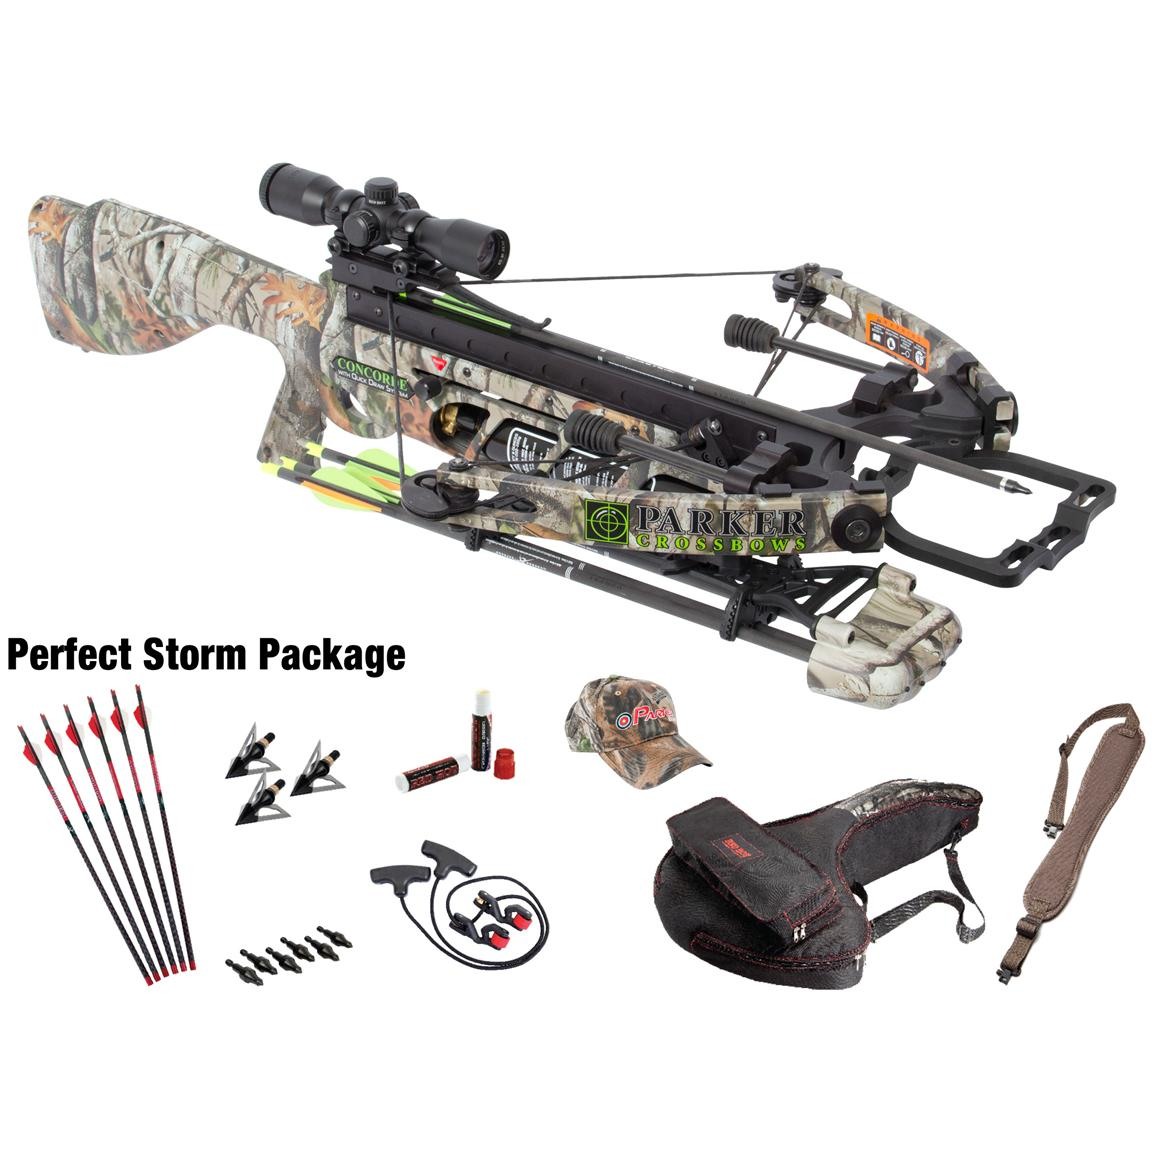 Parker® Concorde 175-lb. Crossbow with Perfect Storm 3X Illuminated Scope Package